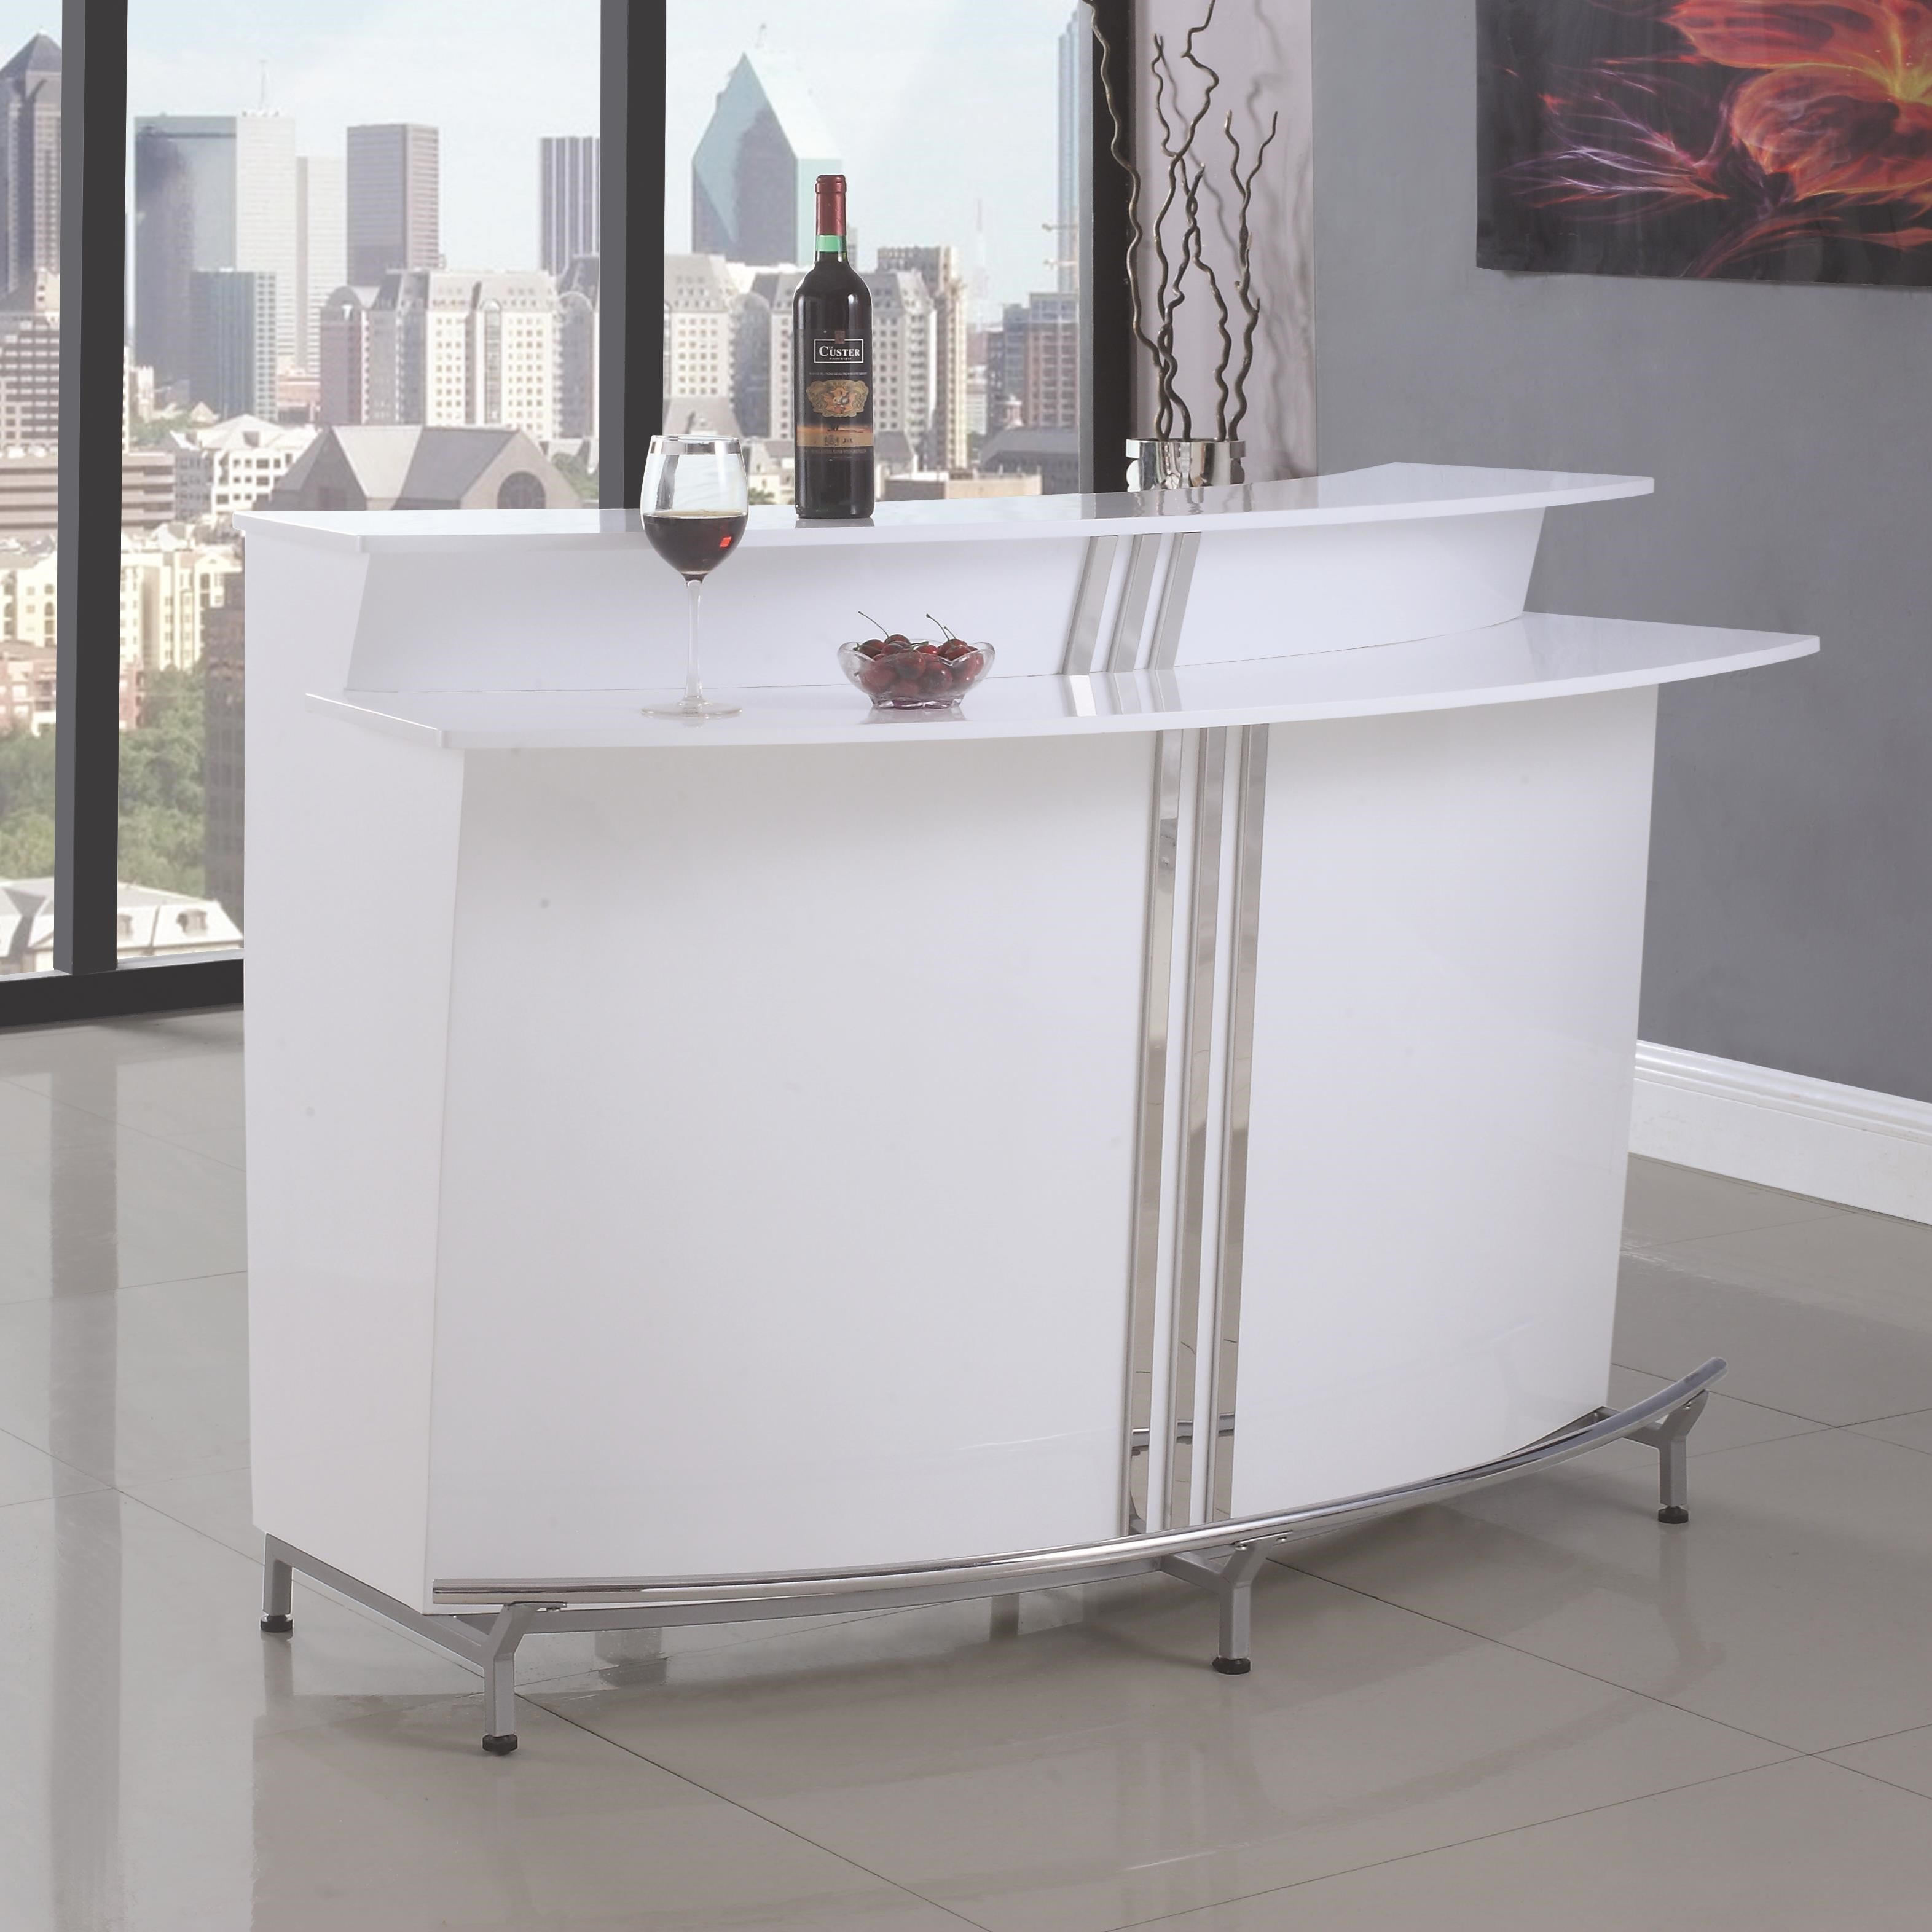 Bar Units And Bar Tables Contemporary Bar With Stemware Racks By Coaster